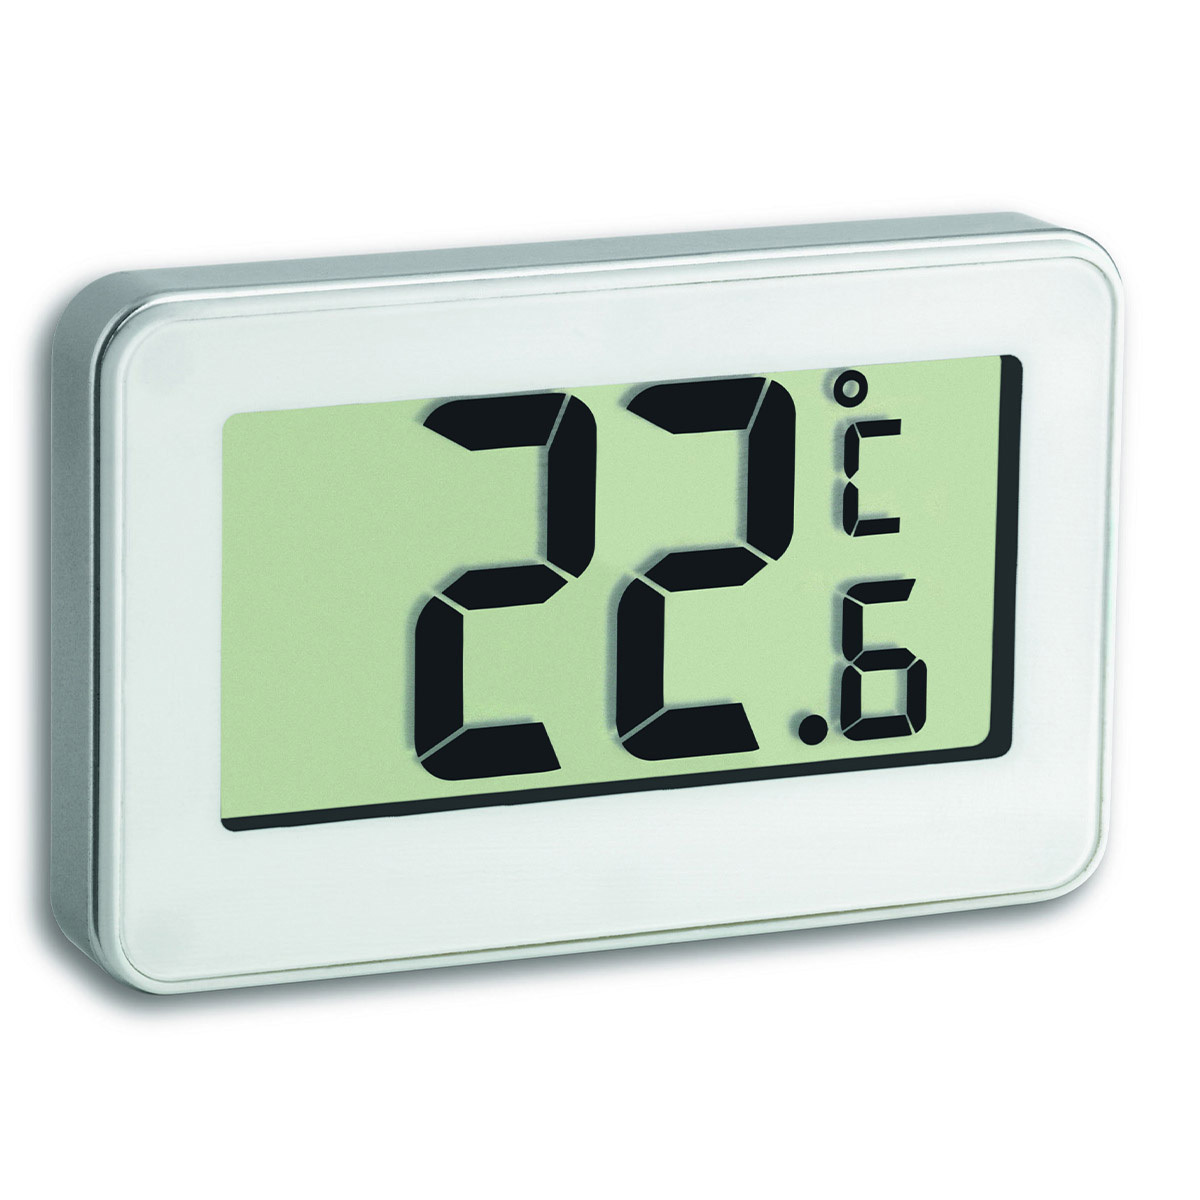 30-2028-02-digitales-thermometer-ansicht1-1200x1200px.jpg